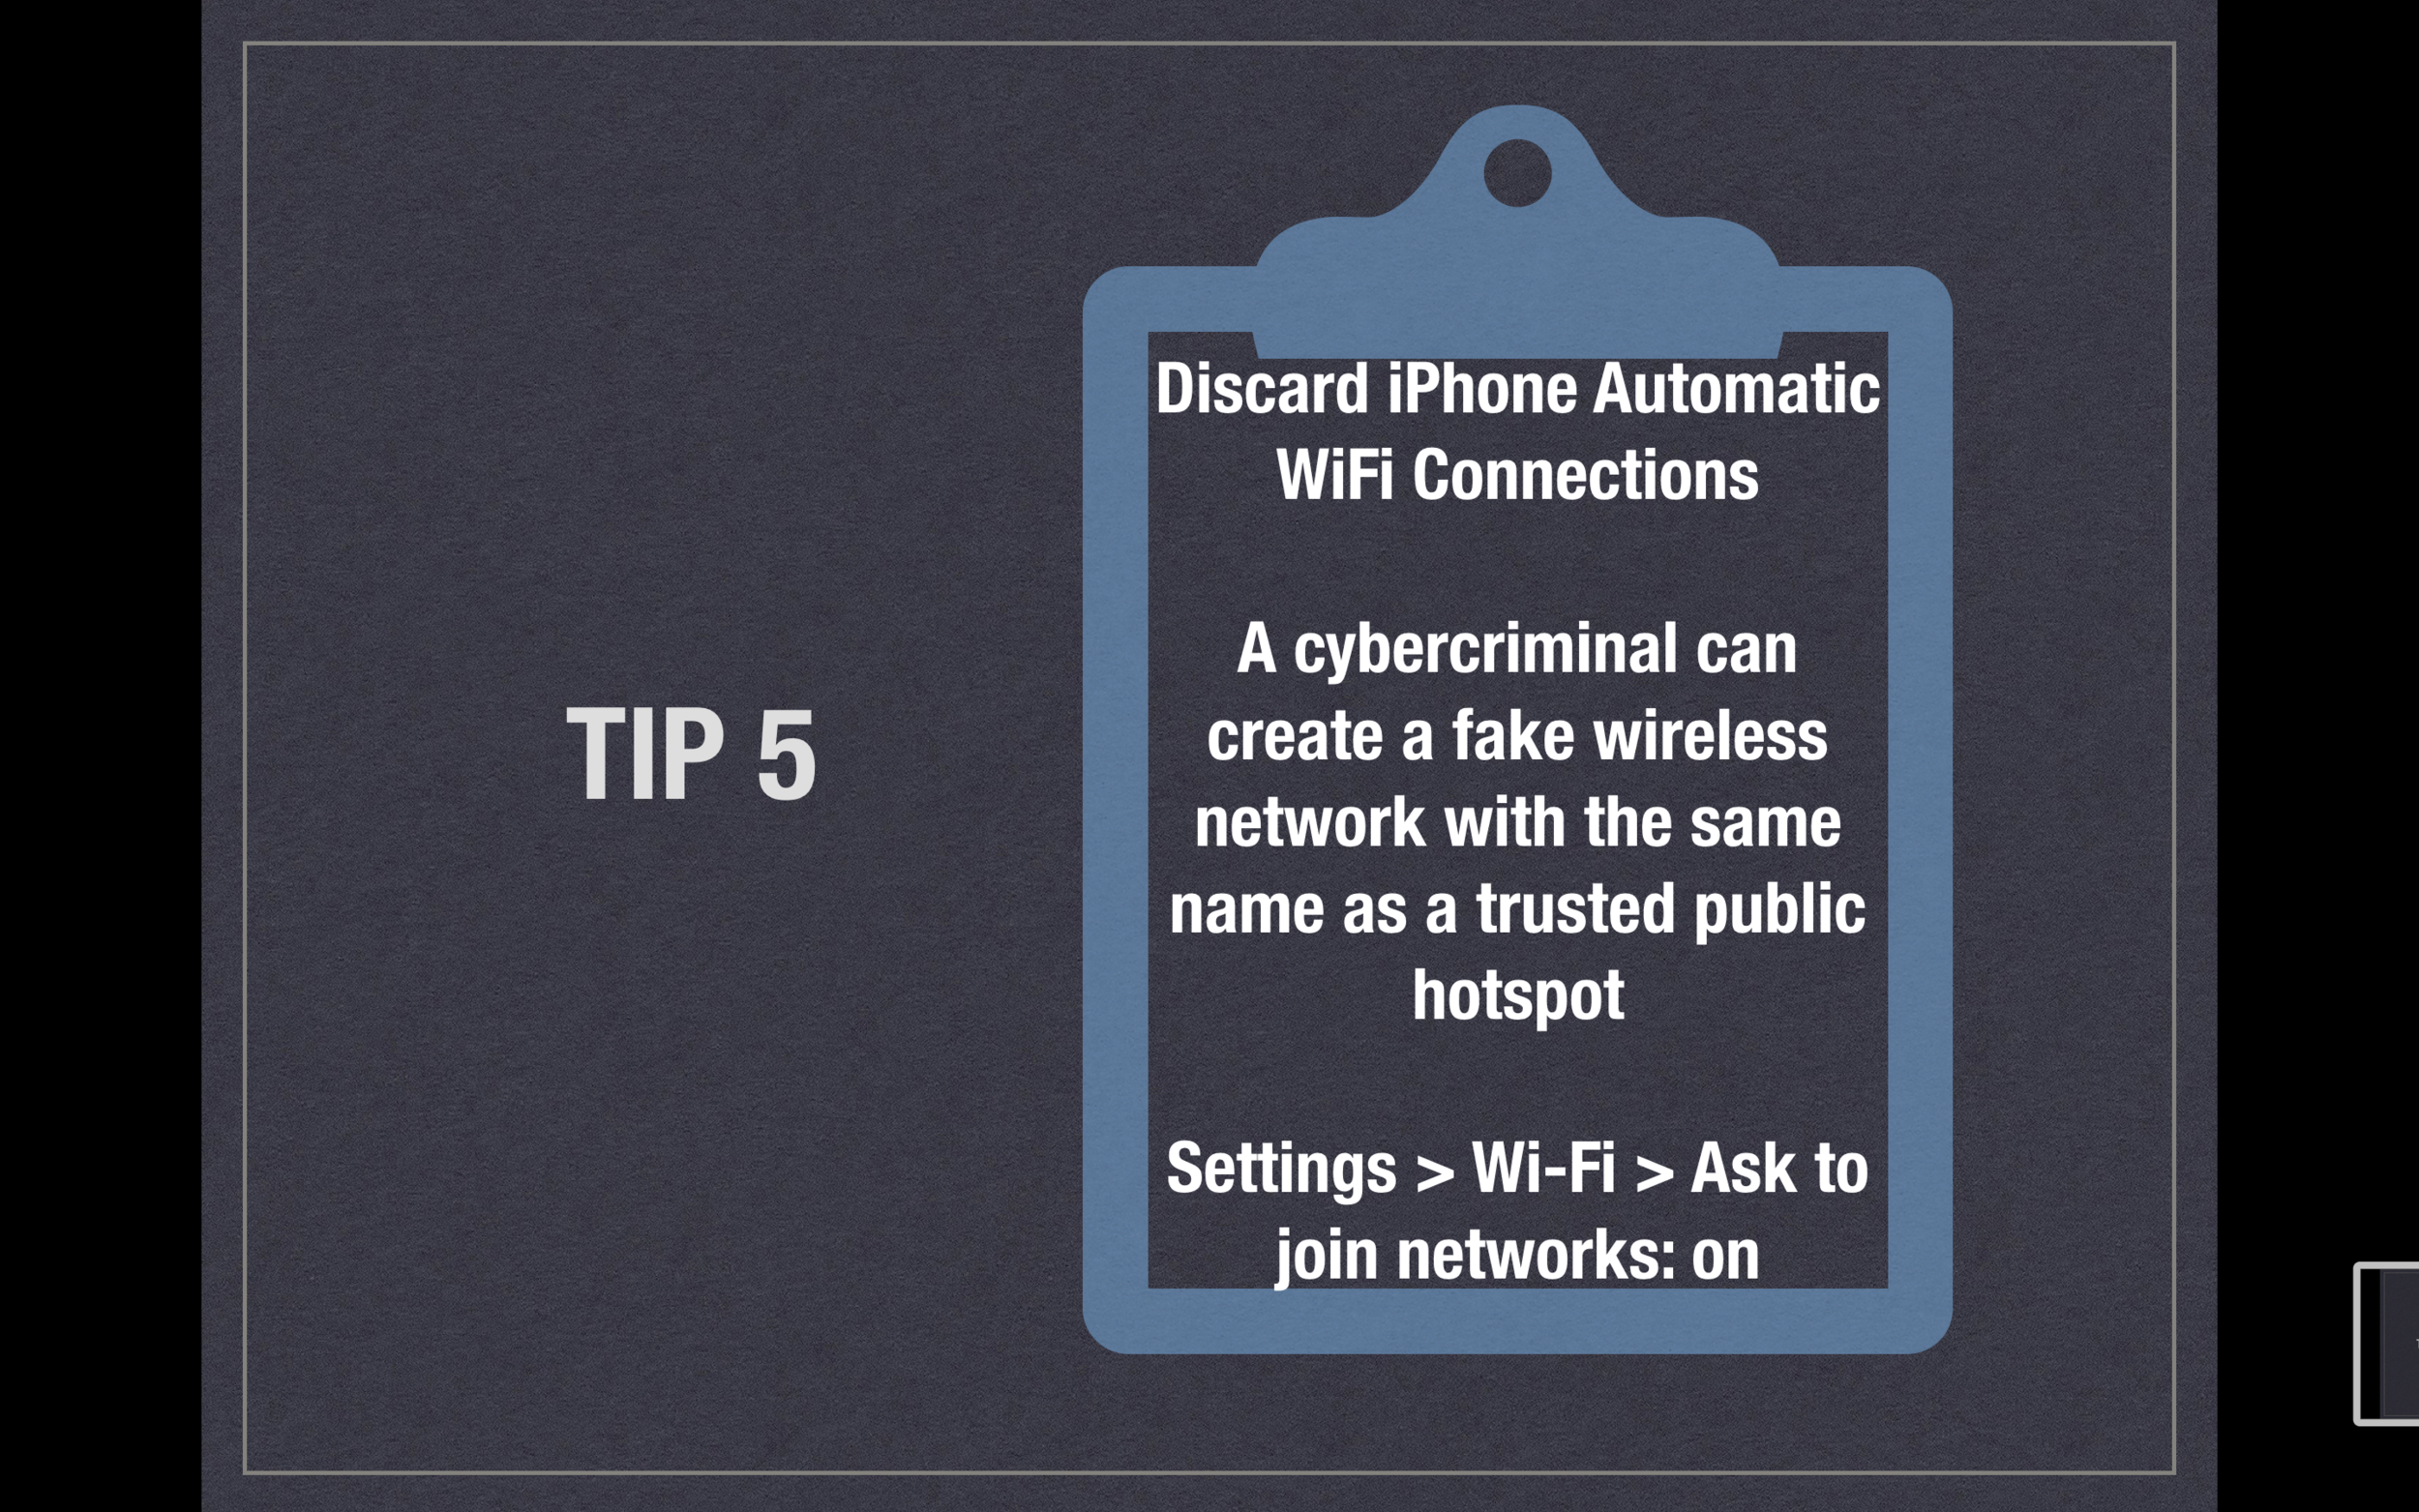 Tip 5 - Discard iPhone Automatic WiFi Connections - A cybercriminal can create a fake wireless network with the same name as a trusted public hotspot. Settings > Wi-Fi > Ask to join networks: on.